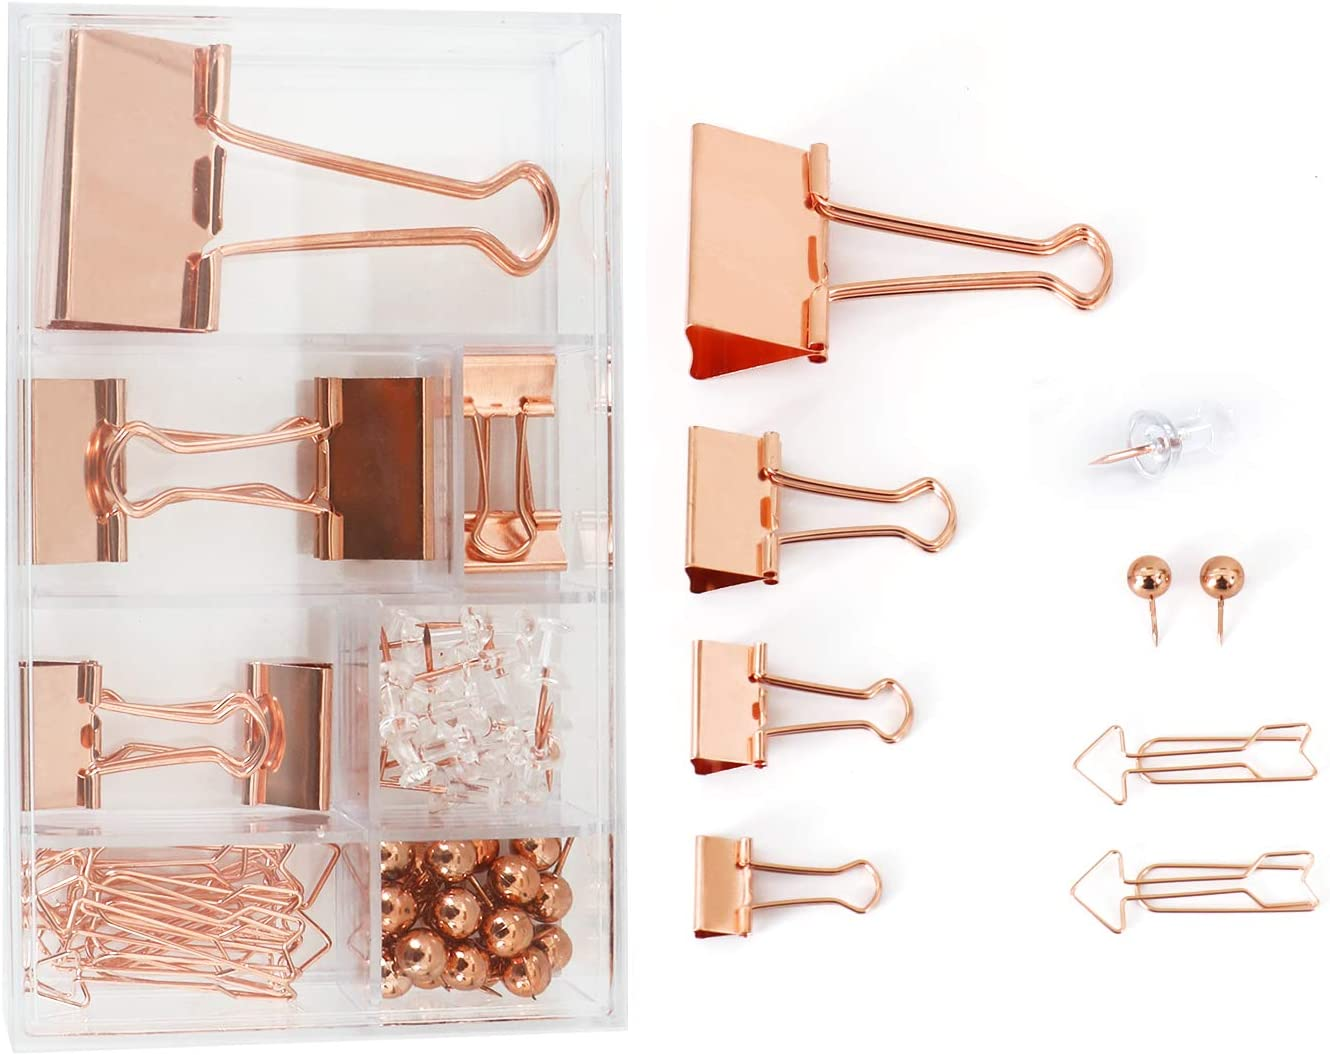 Binder Clips Assorted 4 Sizes, Arrow-Shaped Paper Clips, Push Pins, Metal Fold Back Clips with Transparent Box, for Office School Home Desk Supplies, 57pcs(Rose Gold)